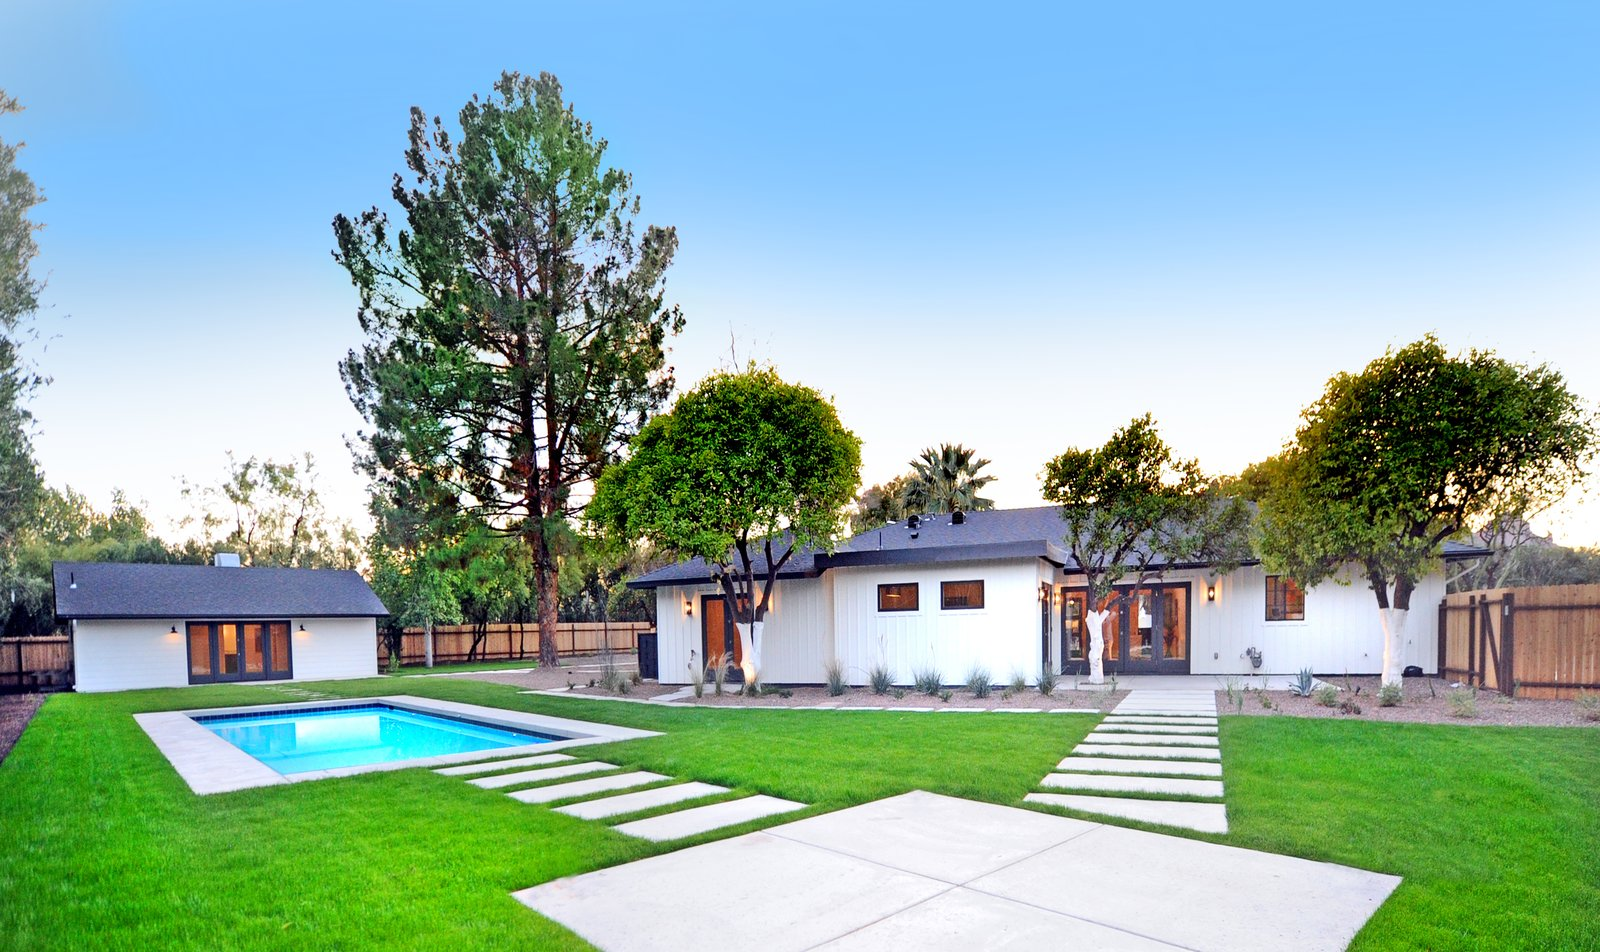 Photo 9 of 12 in 11 Modern Ranch-Style Homes from Quail ...